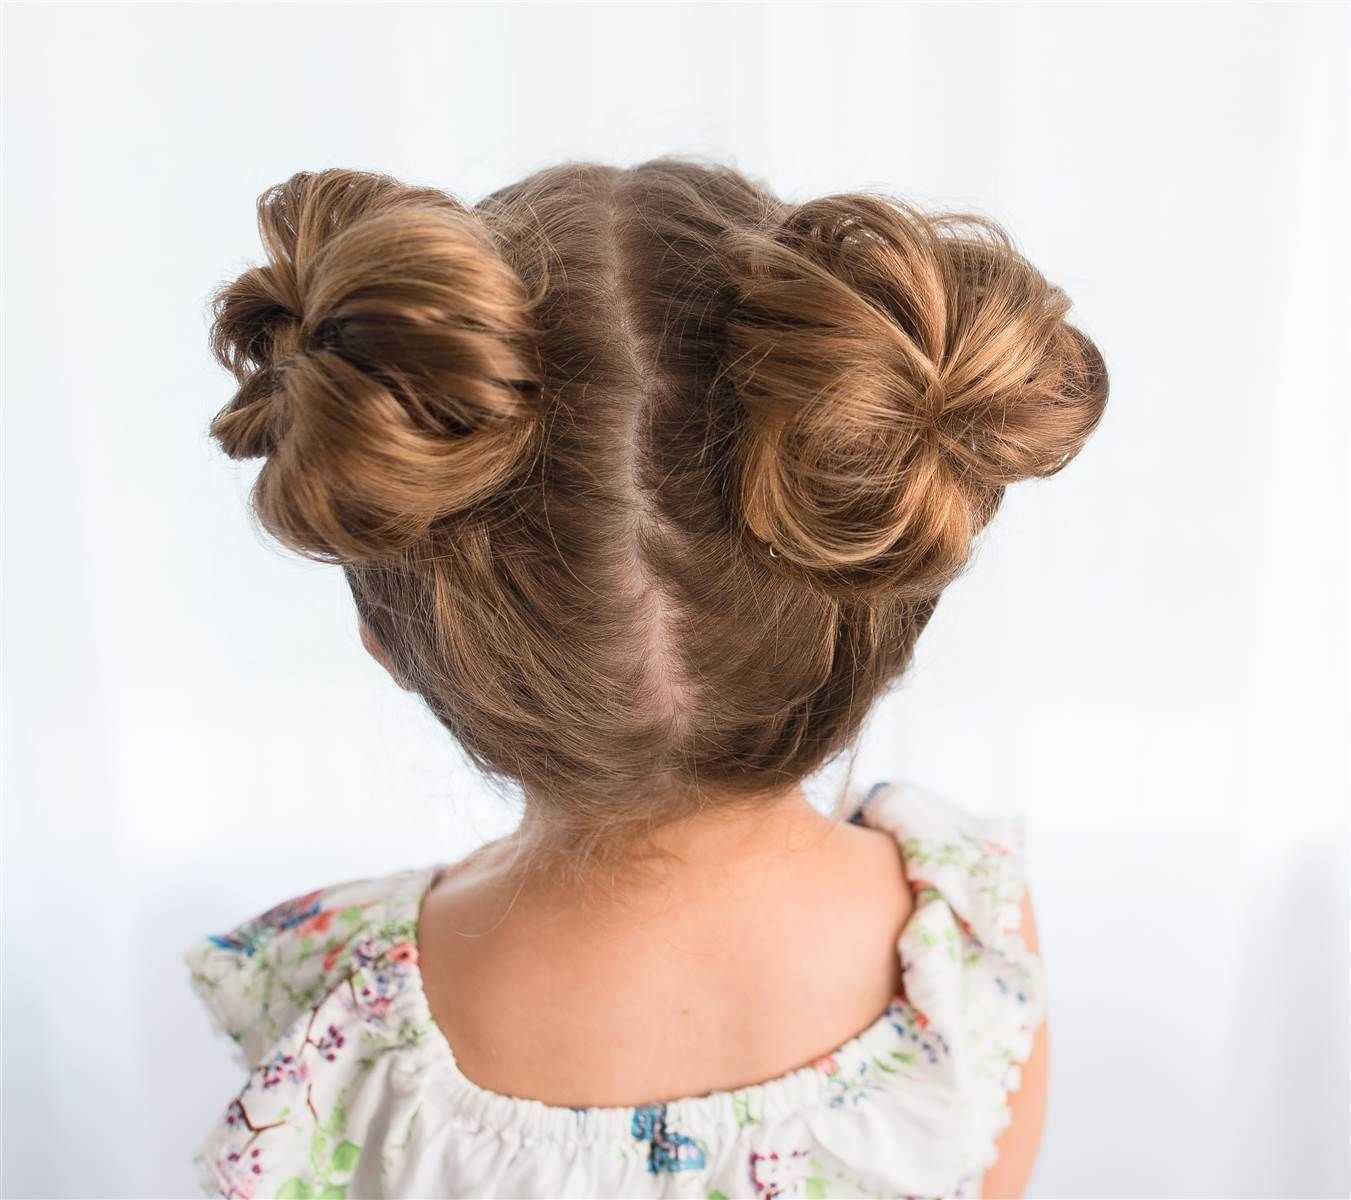 The Best 5 Fast Easy Cute Hairstyles For Girls Hair Style Girl Pictures